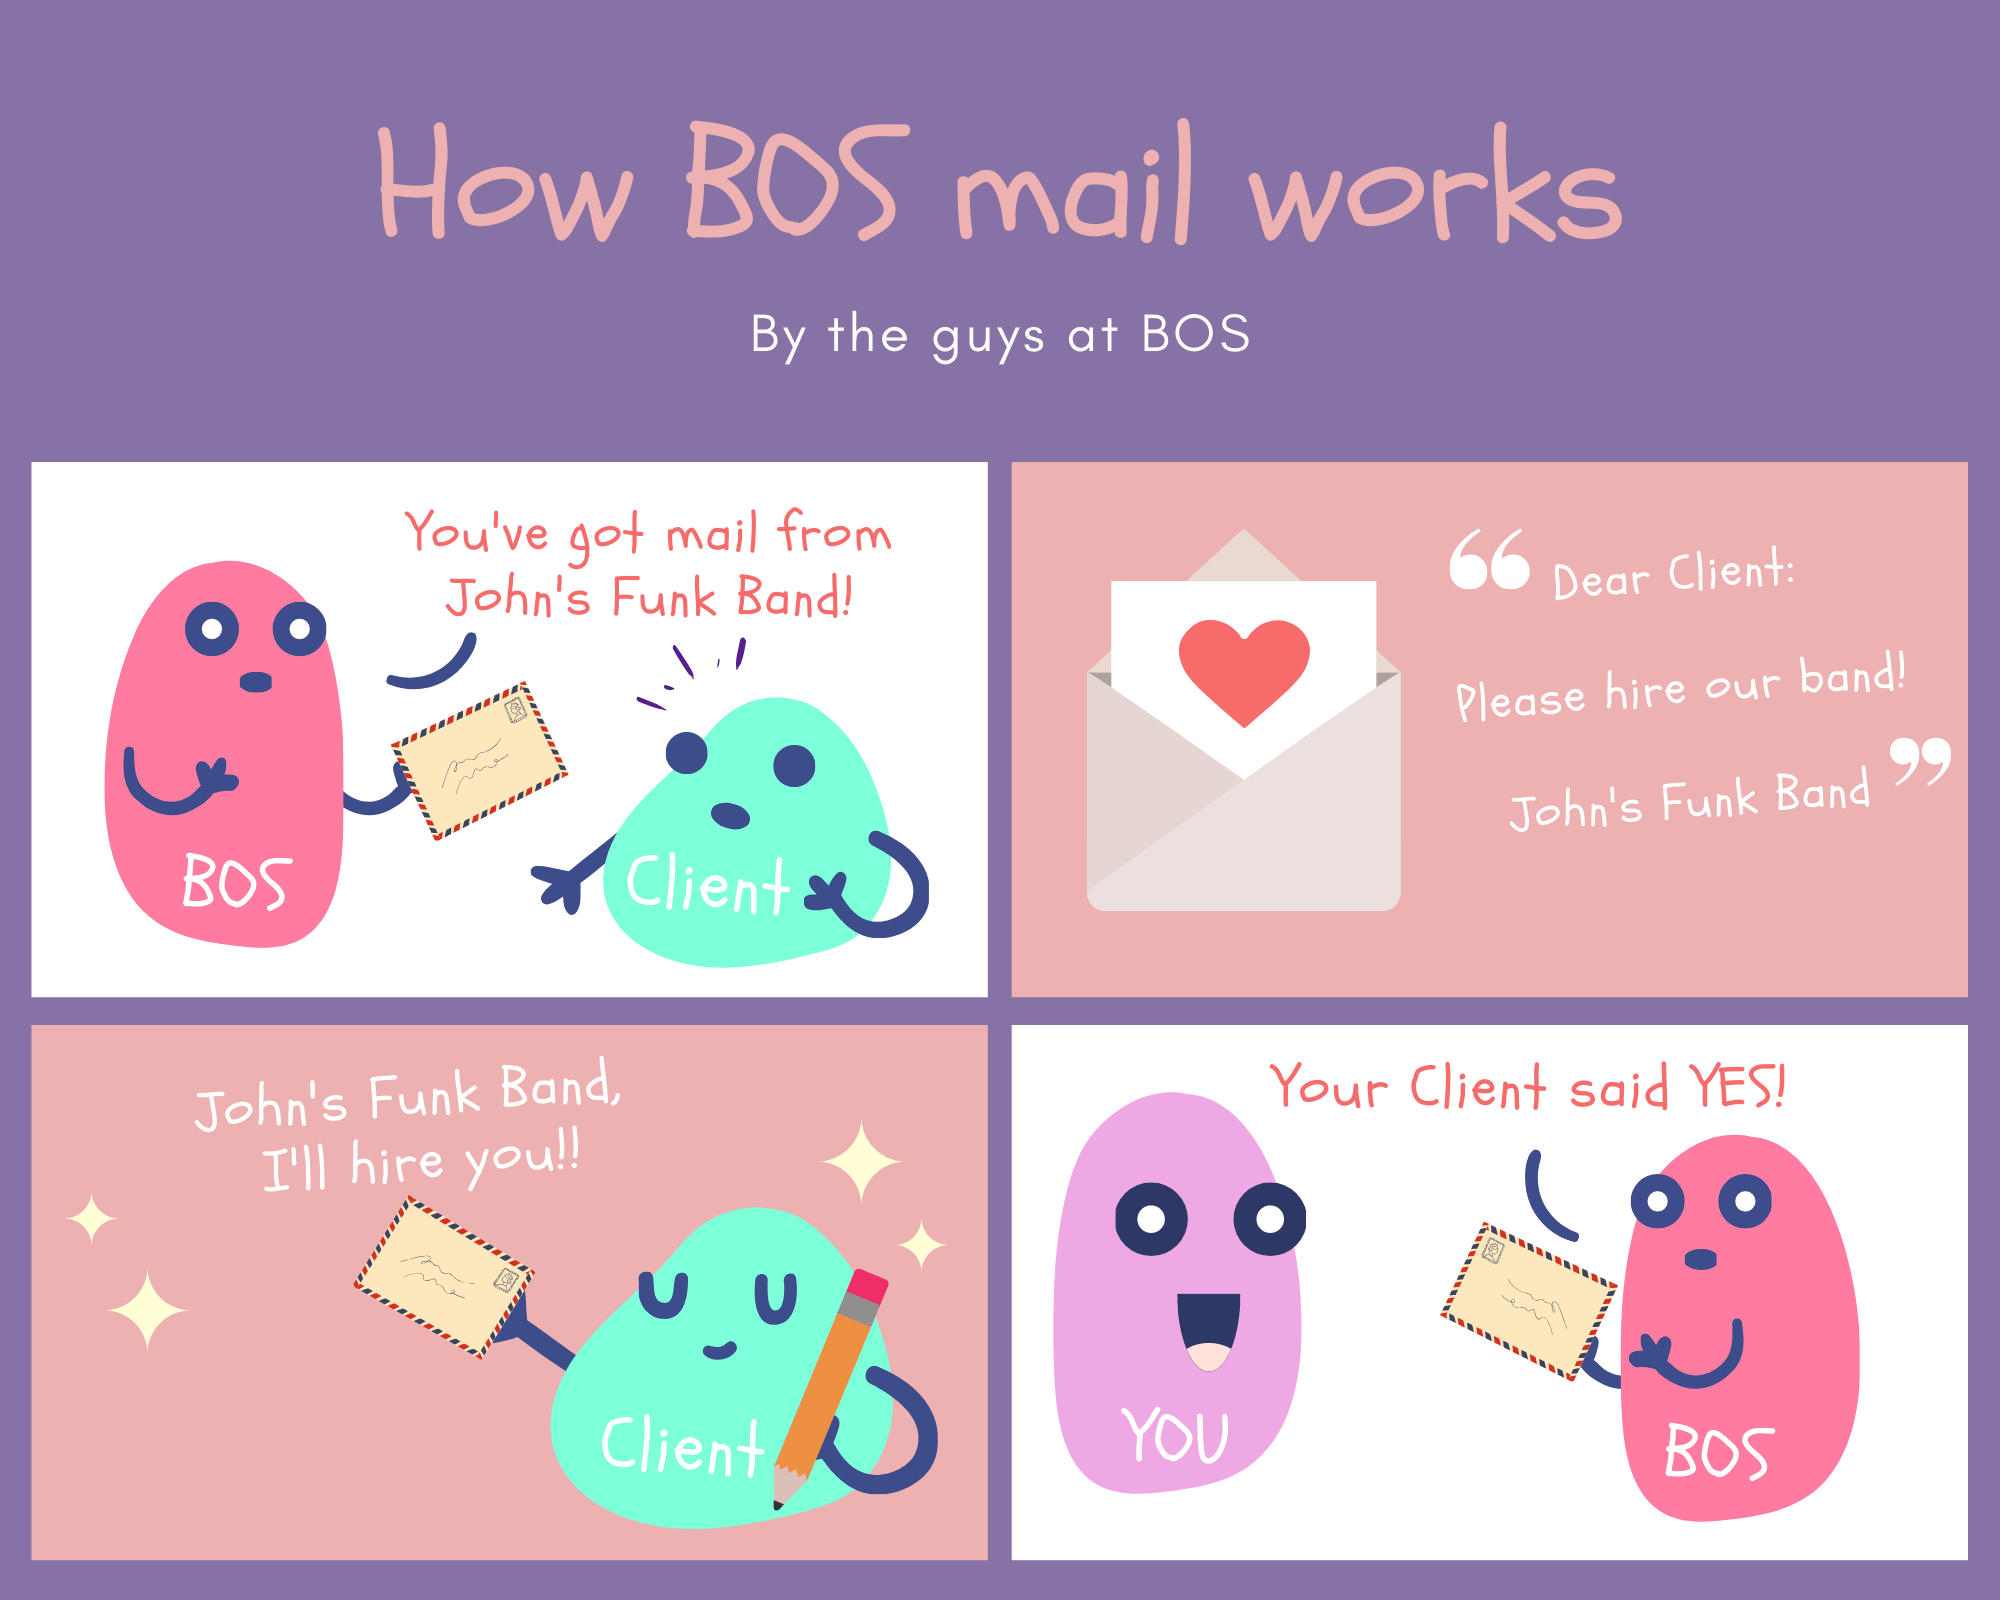 BOS emailing system